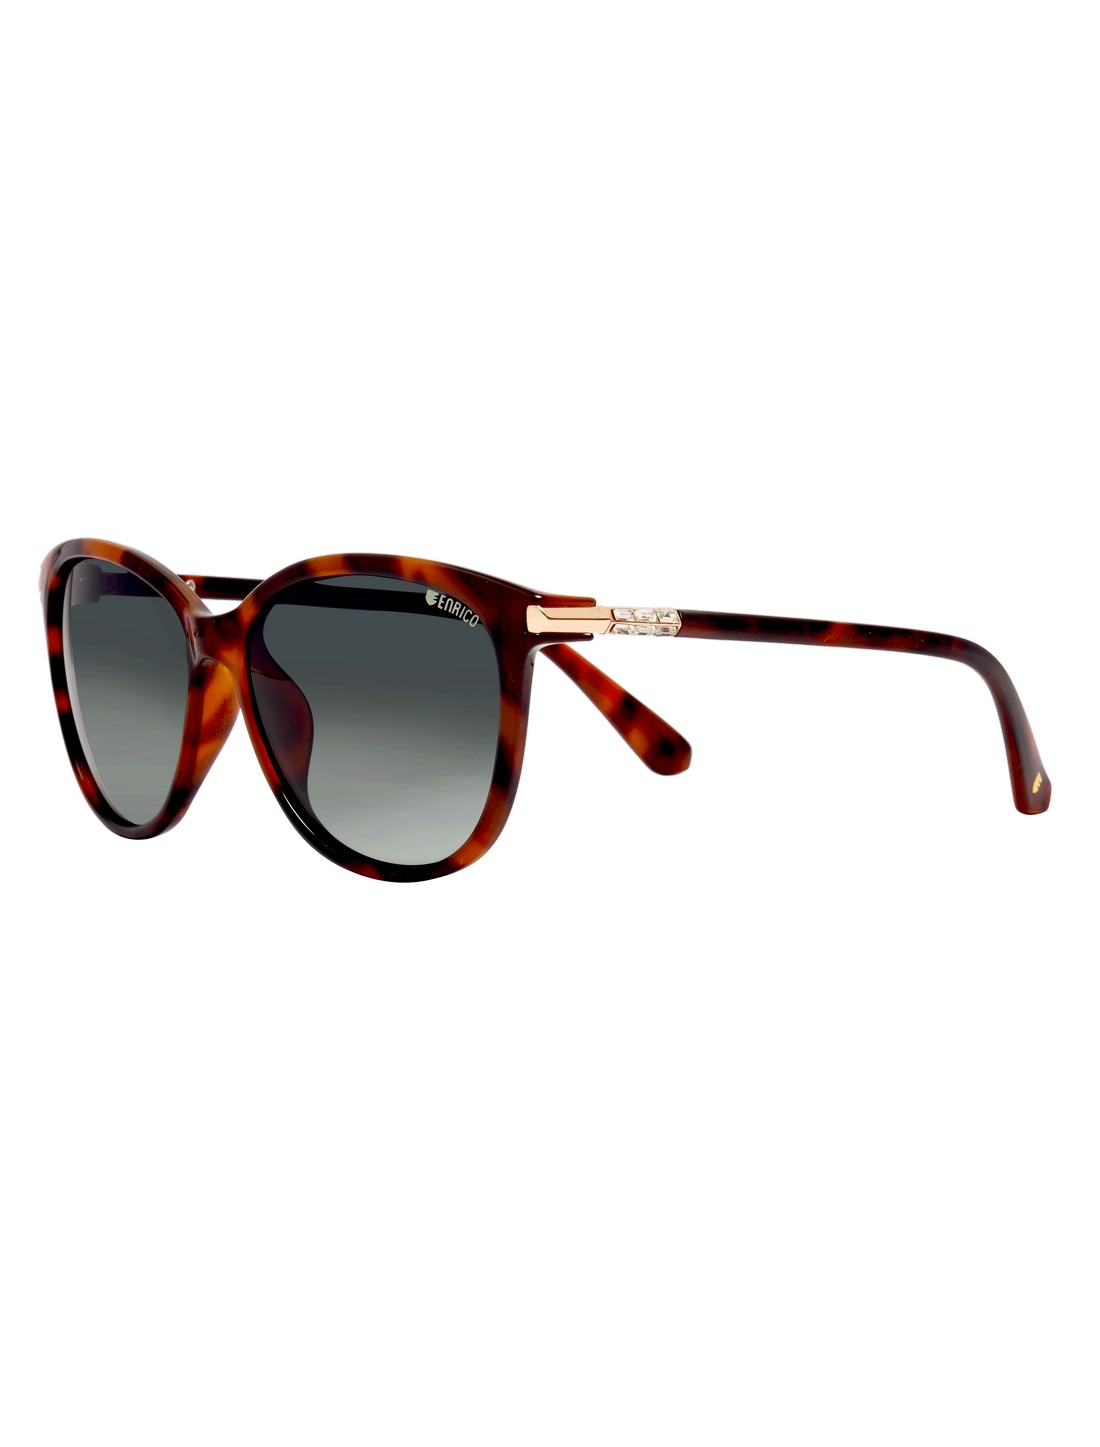 ENRICO   ENRICO Hawaii Polycarbonate UV Protected & Polarized Butterfly Shape Sunglasses for Women ( Lens - Black   Frame - Brown)